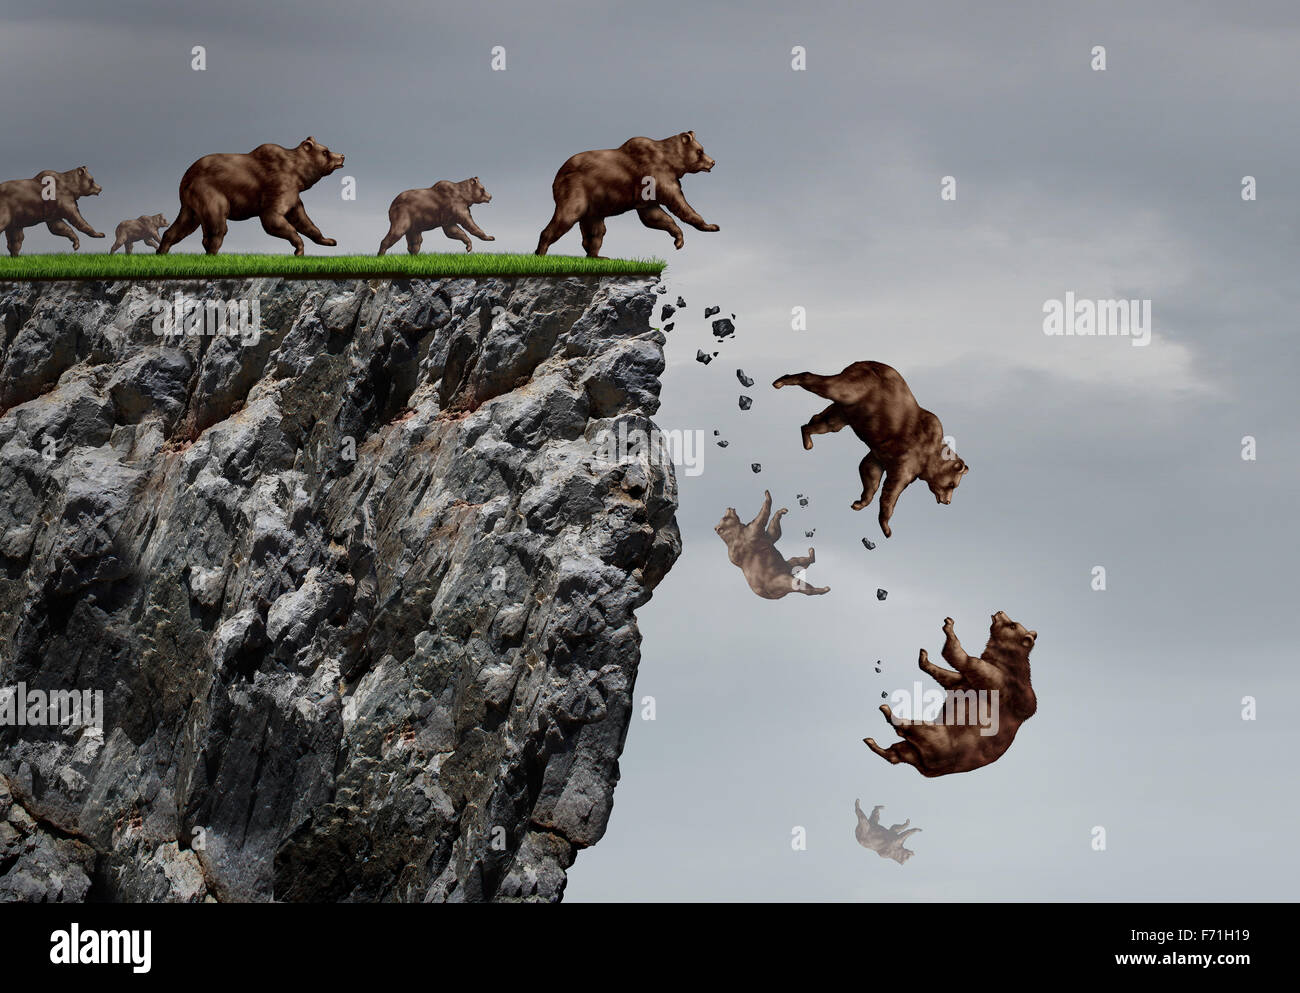 Falling bear market financial decline business and plummeting finance concept for losing investment and value taking - Stock Image